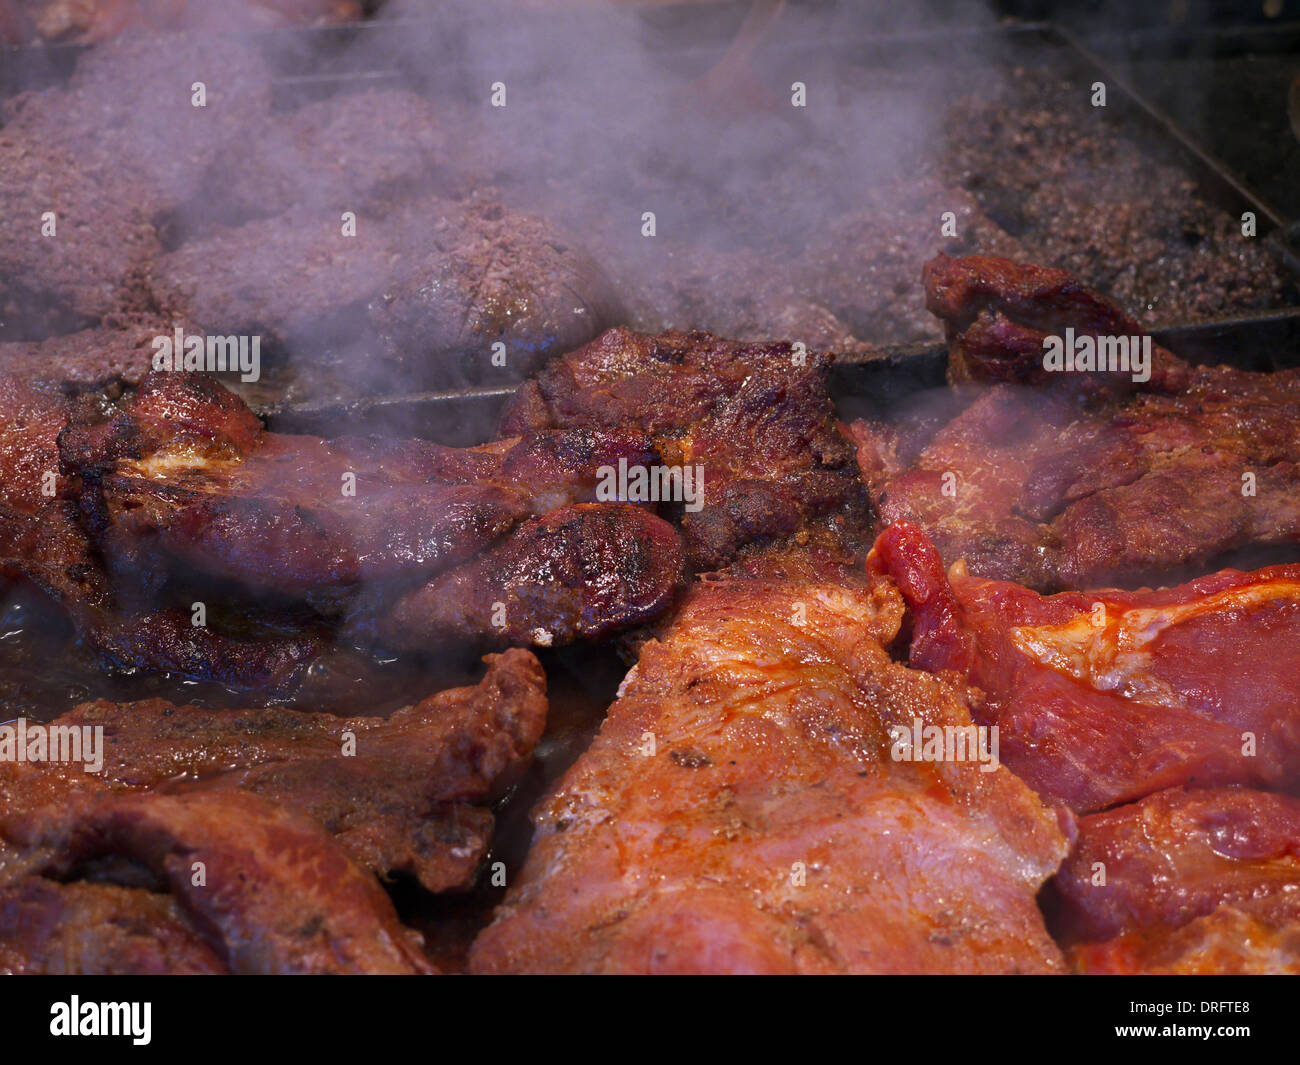 Beef and pork grilling in an outdoor stall at the Christmas markets in Krakow, Poland - Stock Image